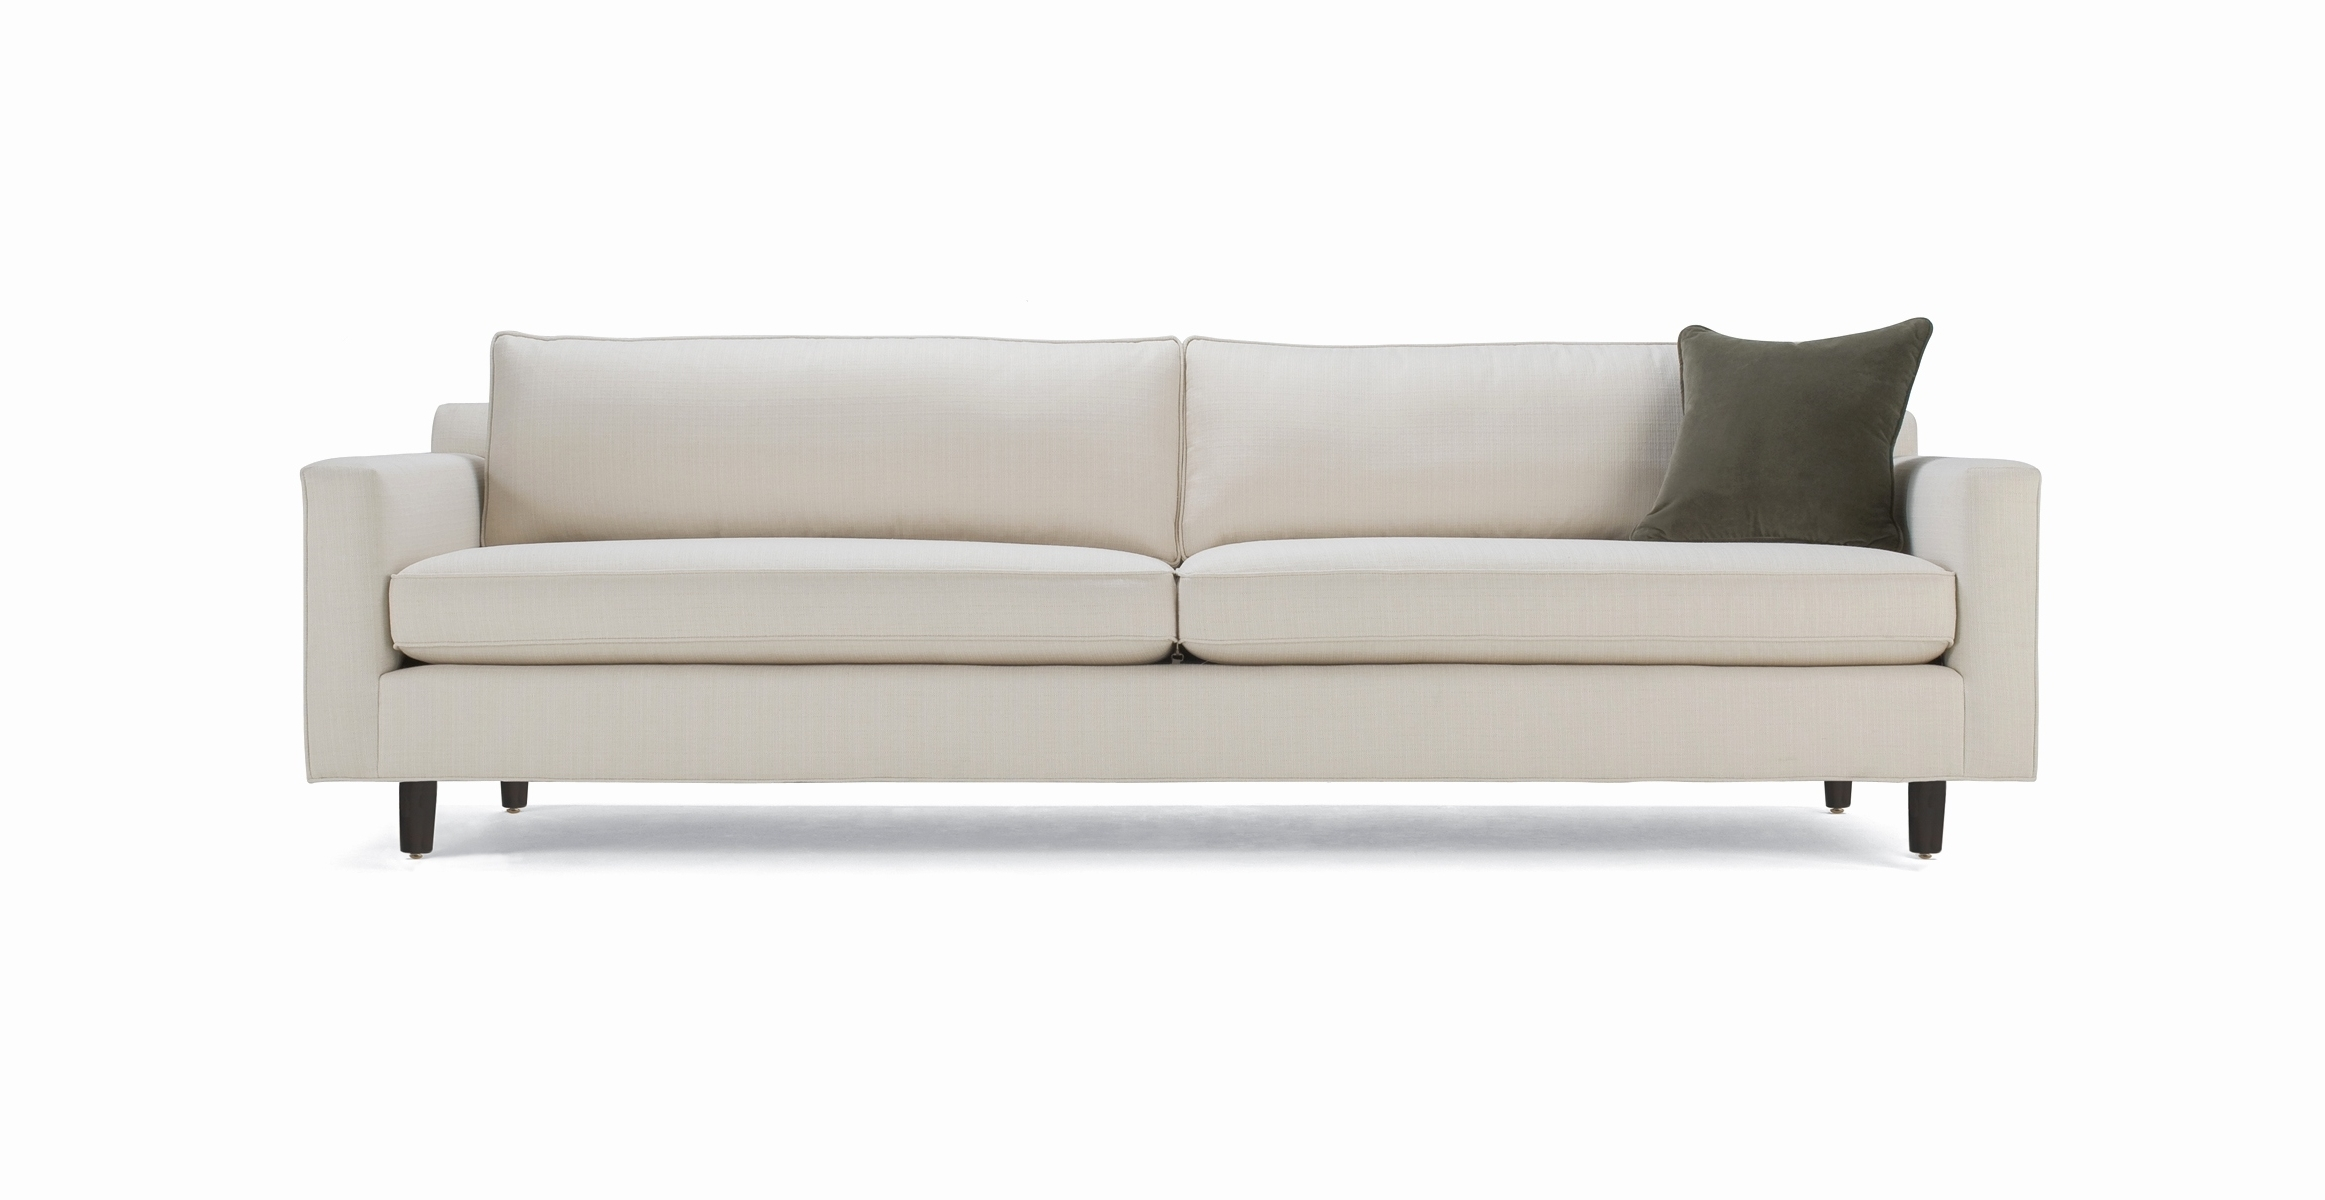 Mitchell Gold Sofas For Well Known New Mitchell Gold Sofa 2018 – Couches Ideas (View 12 of 20)